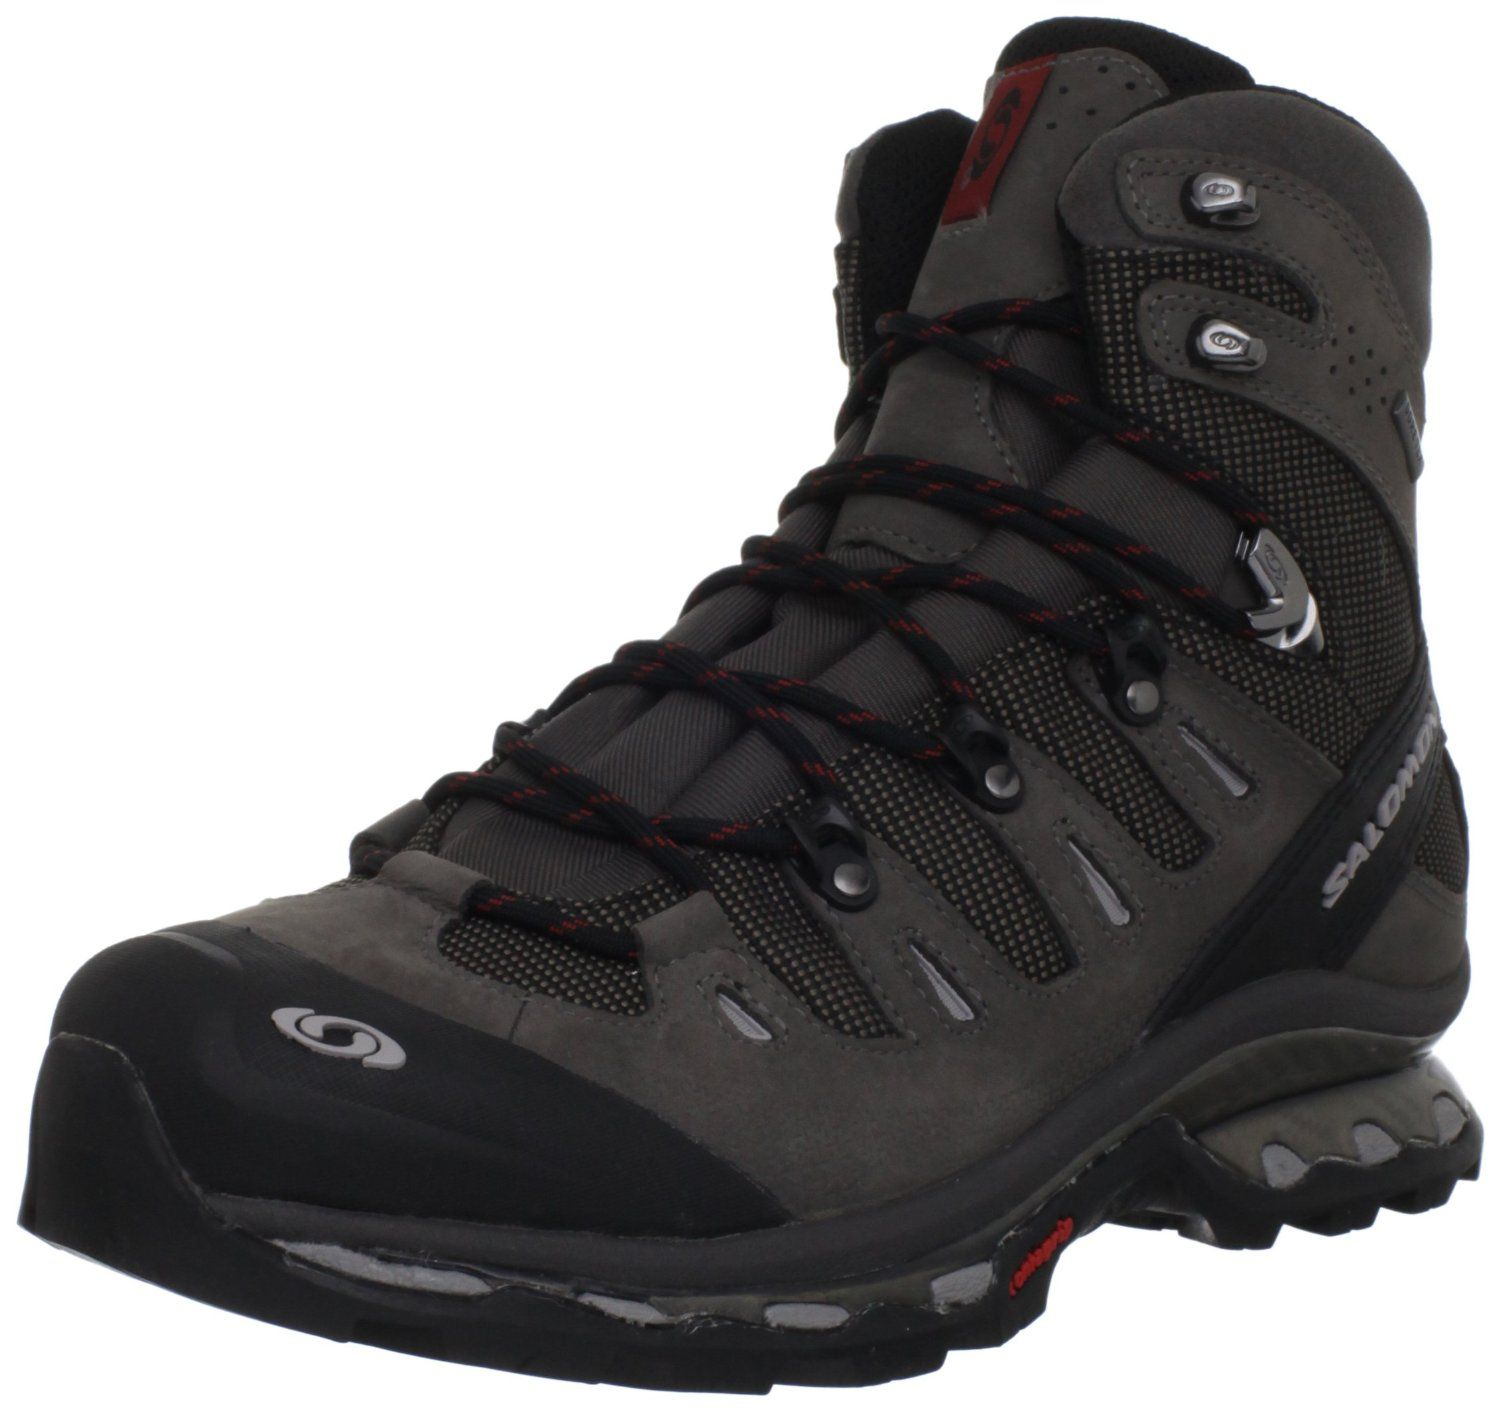 d702104f4de0 Amazon.com  Salomon Men s Quest 4D GTX Hiking Boot